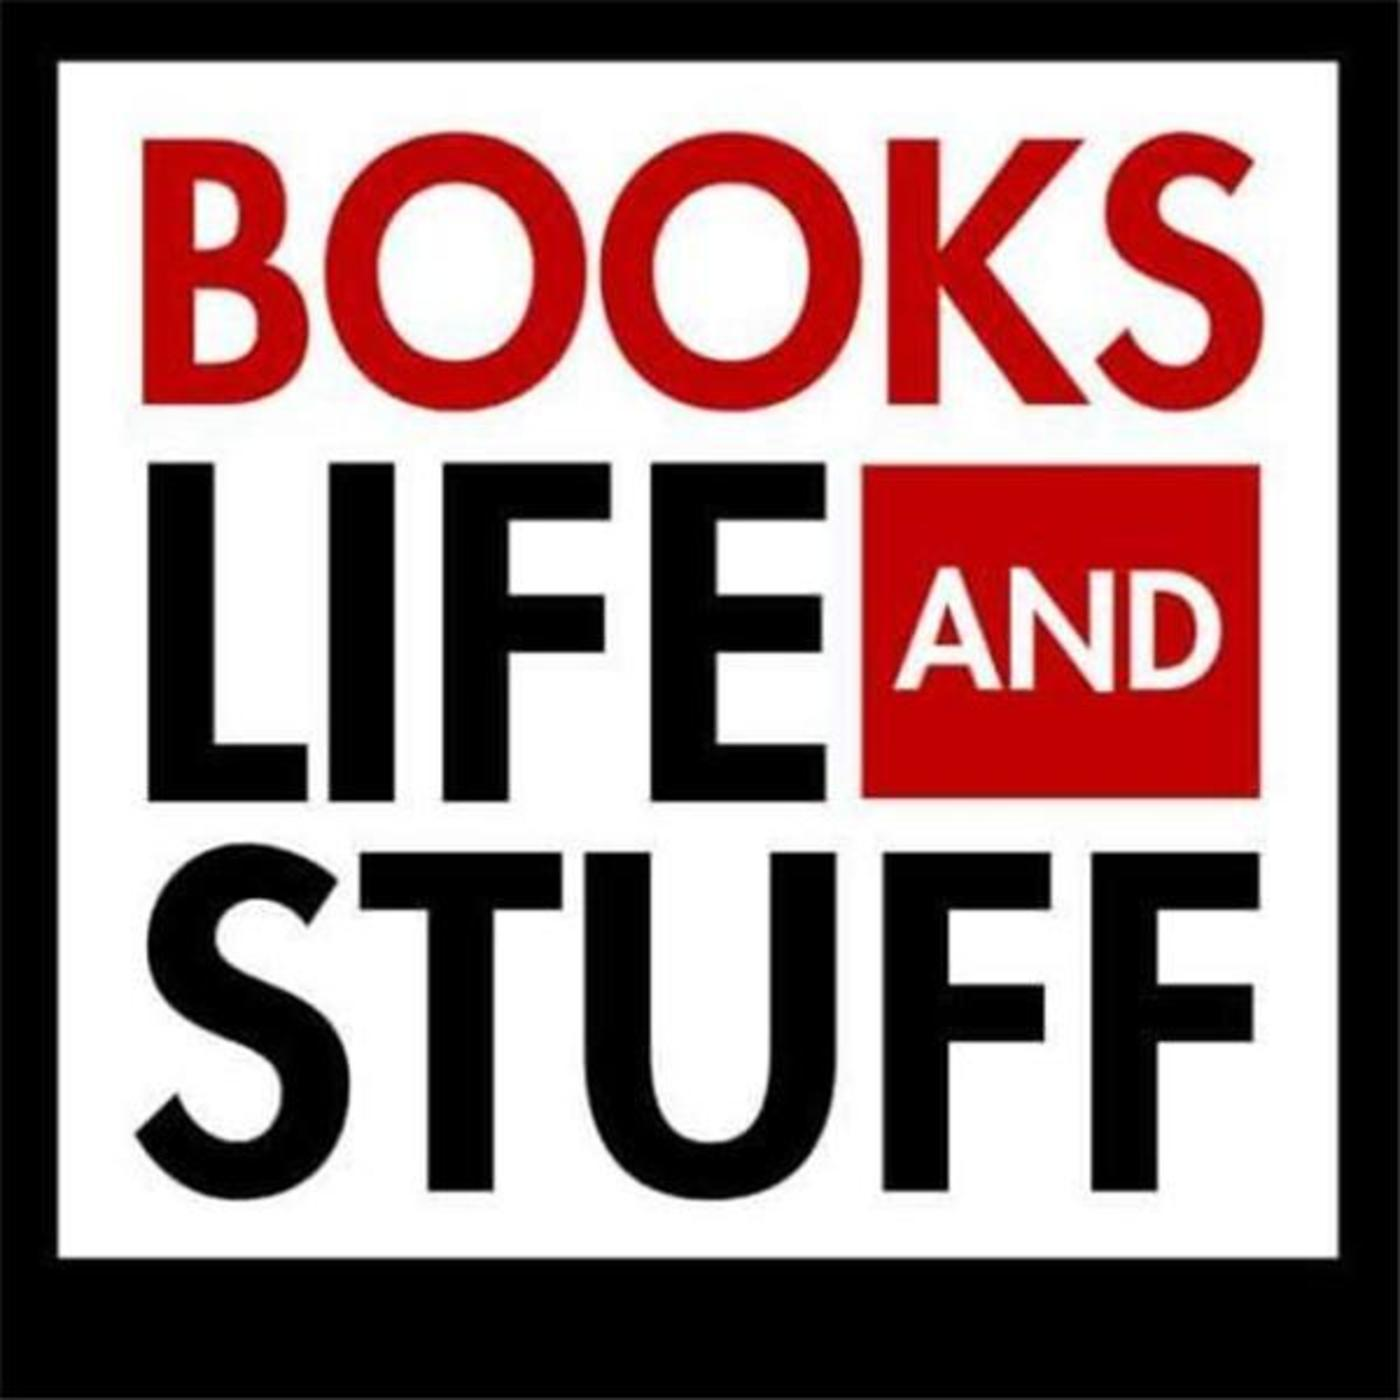 Books, Life and Stuff